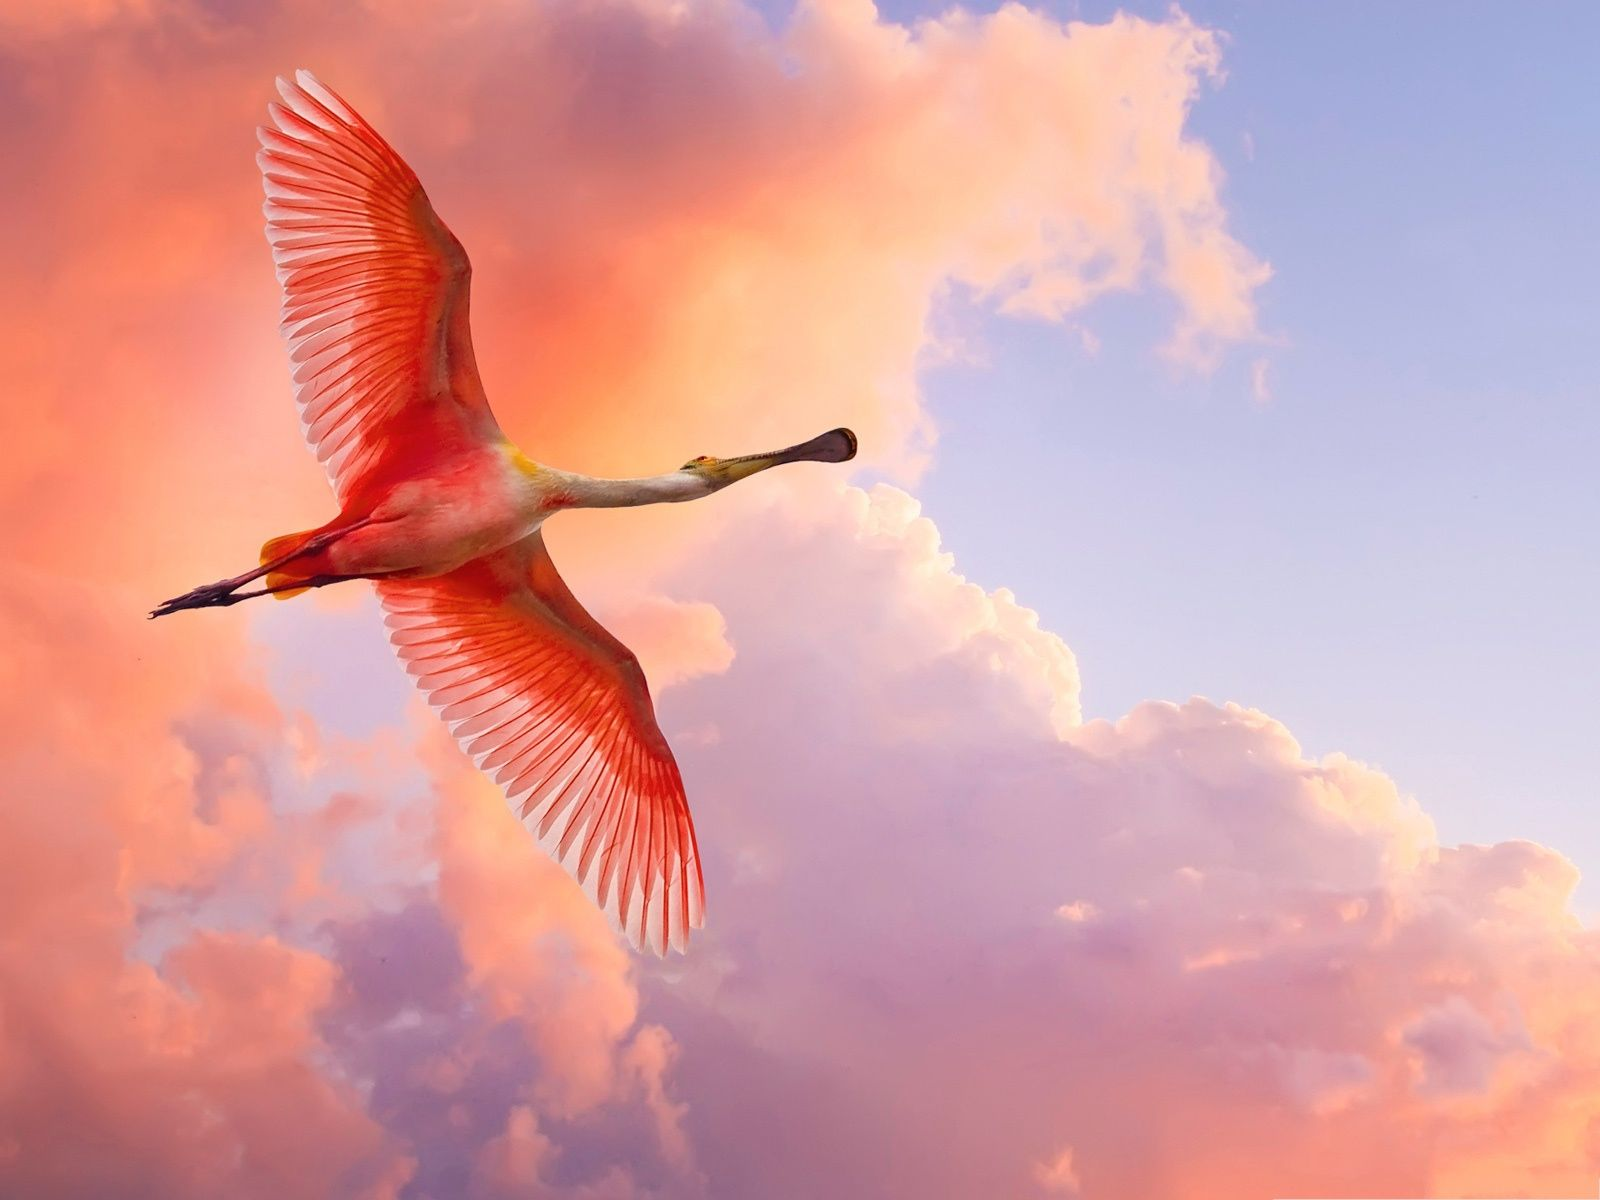 Beautiful Flying Bird Red Stretched Wings Big And Perfect Body The Best Decoration 1600x1200 Free Wallpaper Do Birds Flying Roseate Spoonbill Bird Wallpaper